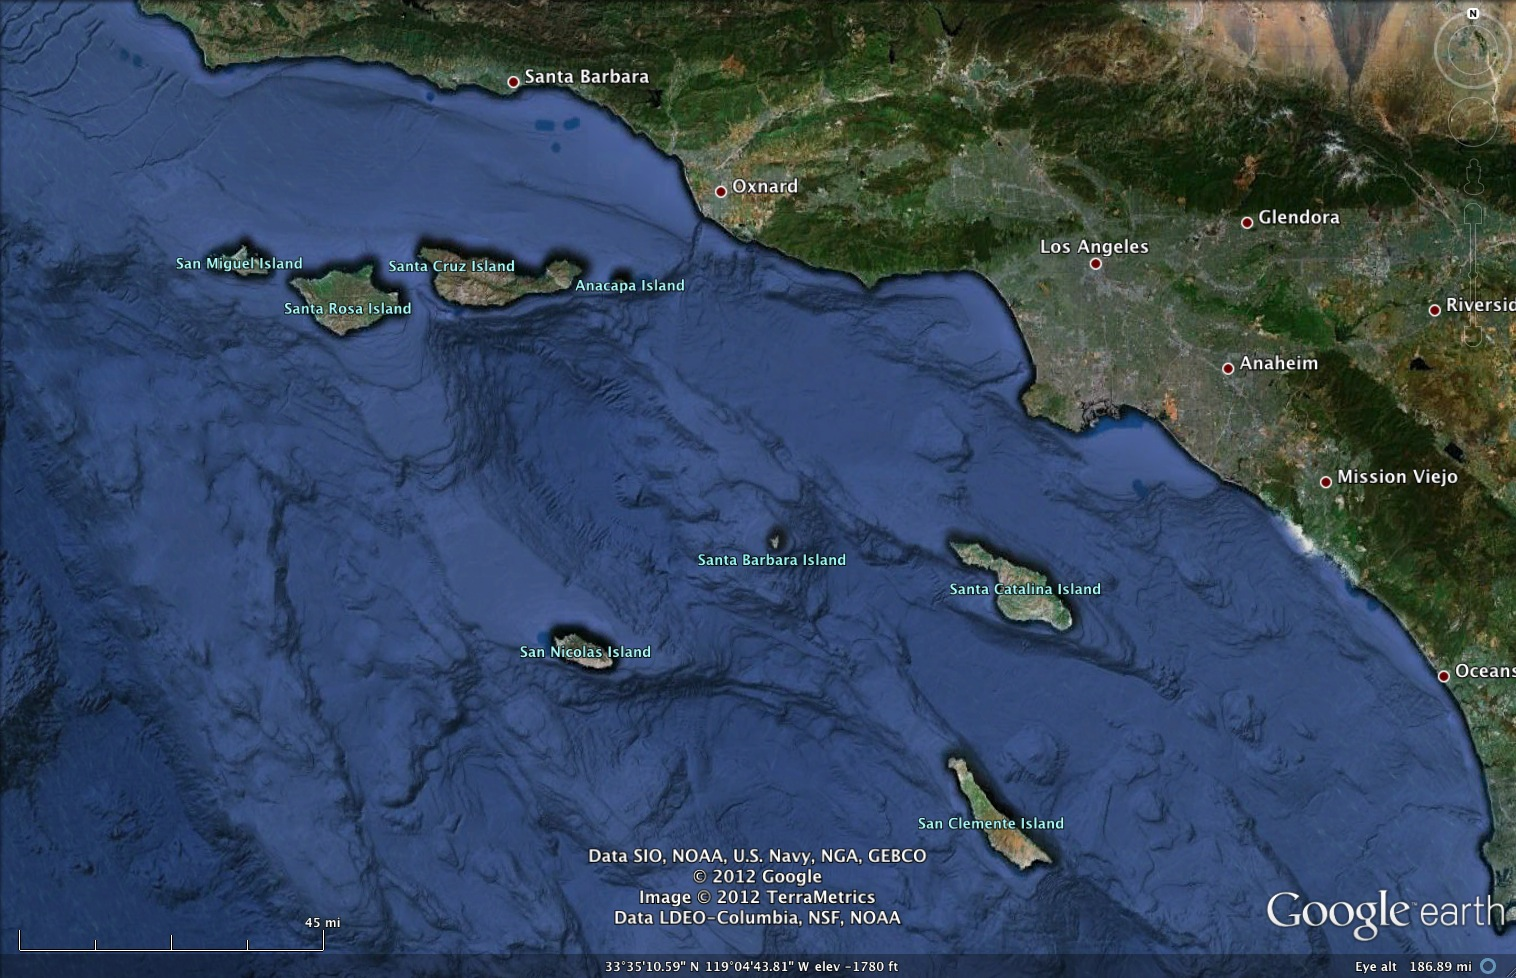 Five Of The Islands Are Owned By The Federal Government As The Channel Islands National Park Part Of Santa Cruz Santa Rosa San Miguel Anacapa